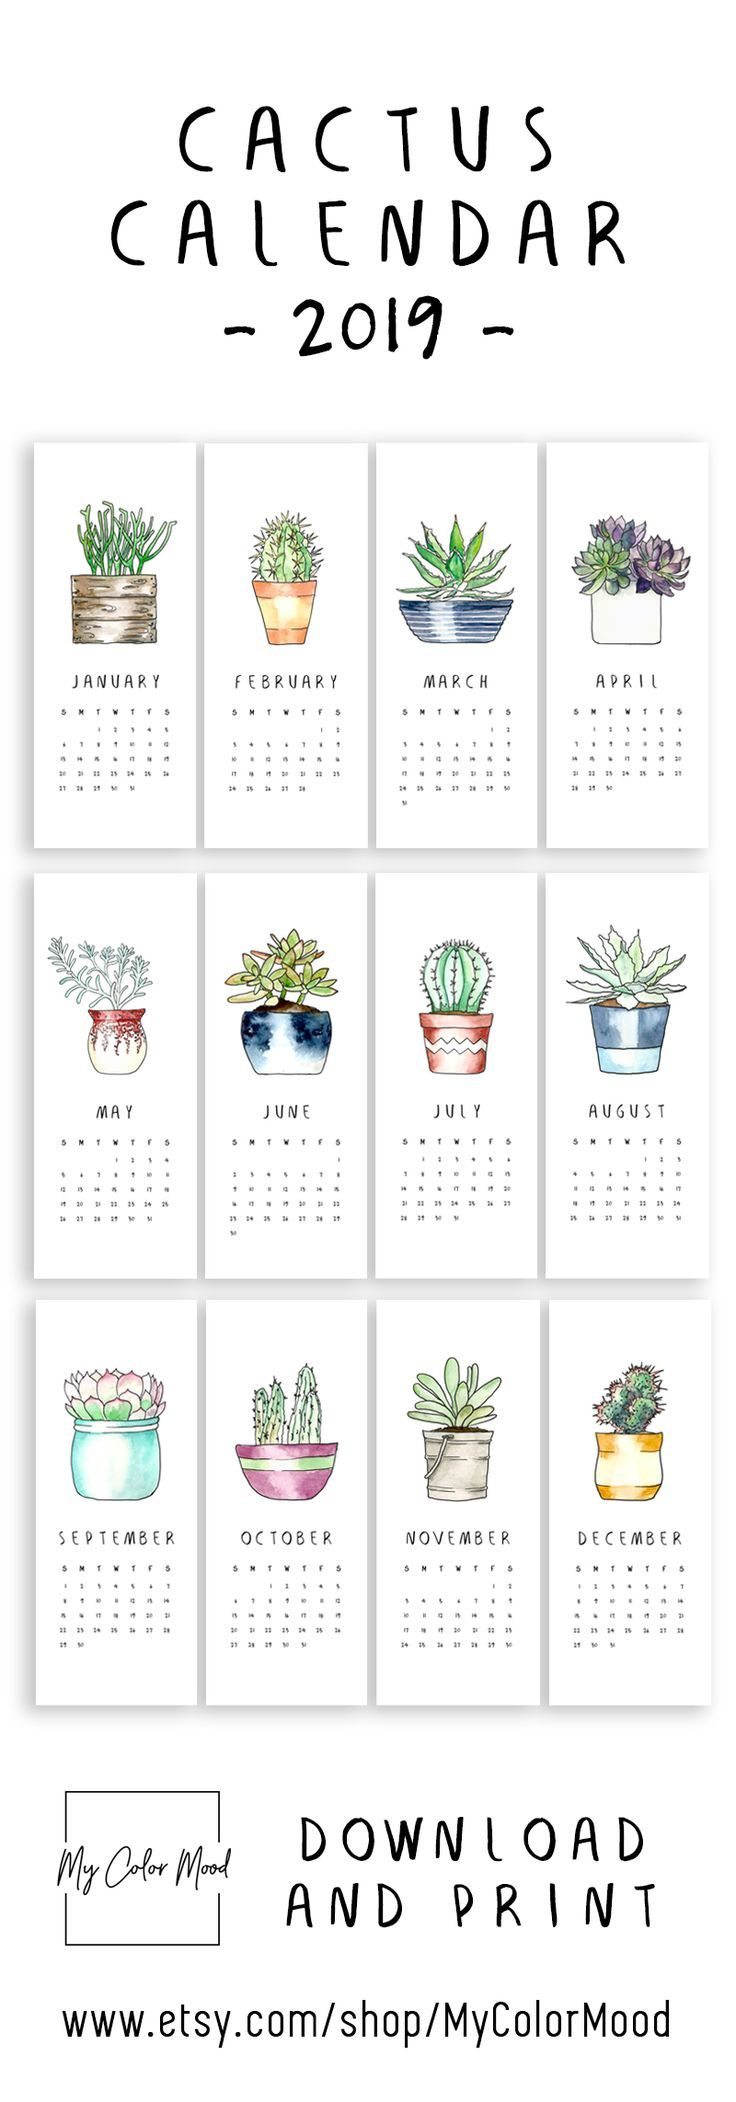 Modern cactus calendar 2019 for all the succulent lovers These small printable calendar pages will be an original decor accent for your home or office HOW TO USE THIS CAL...